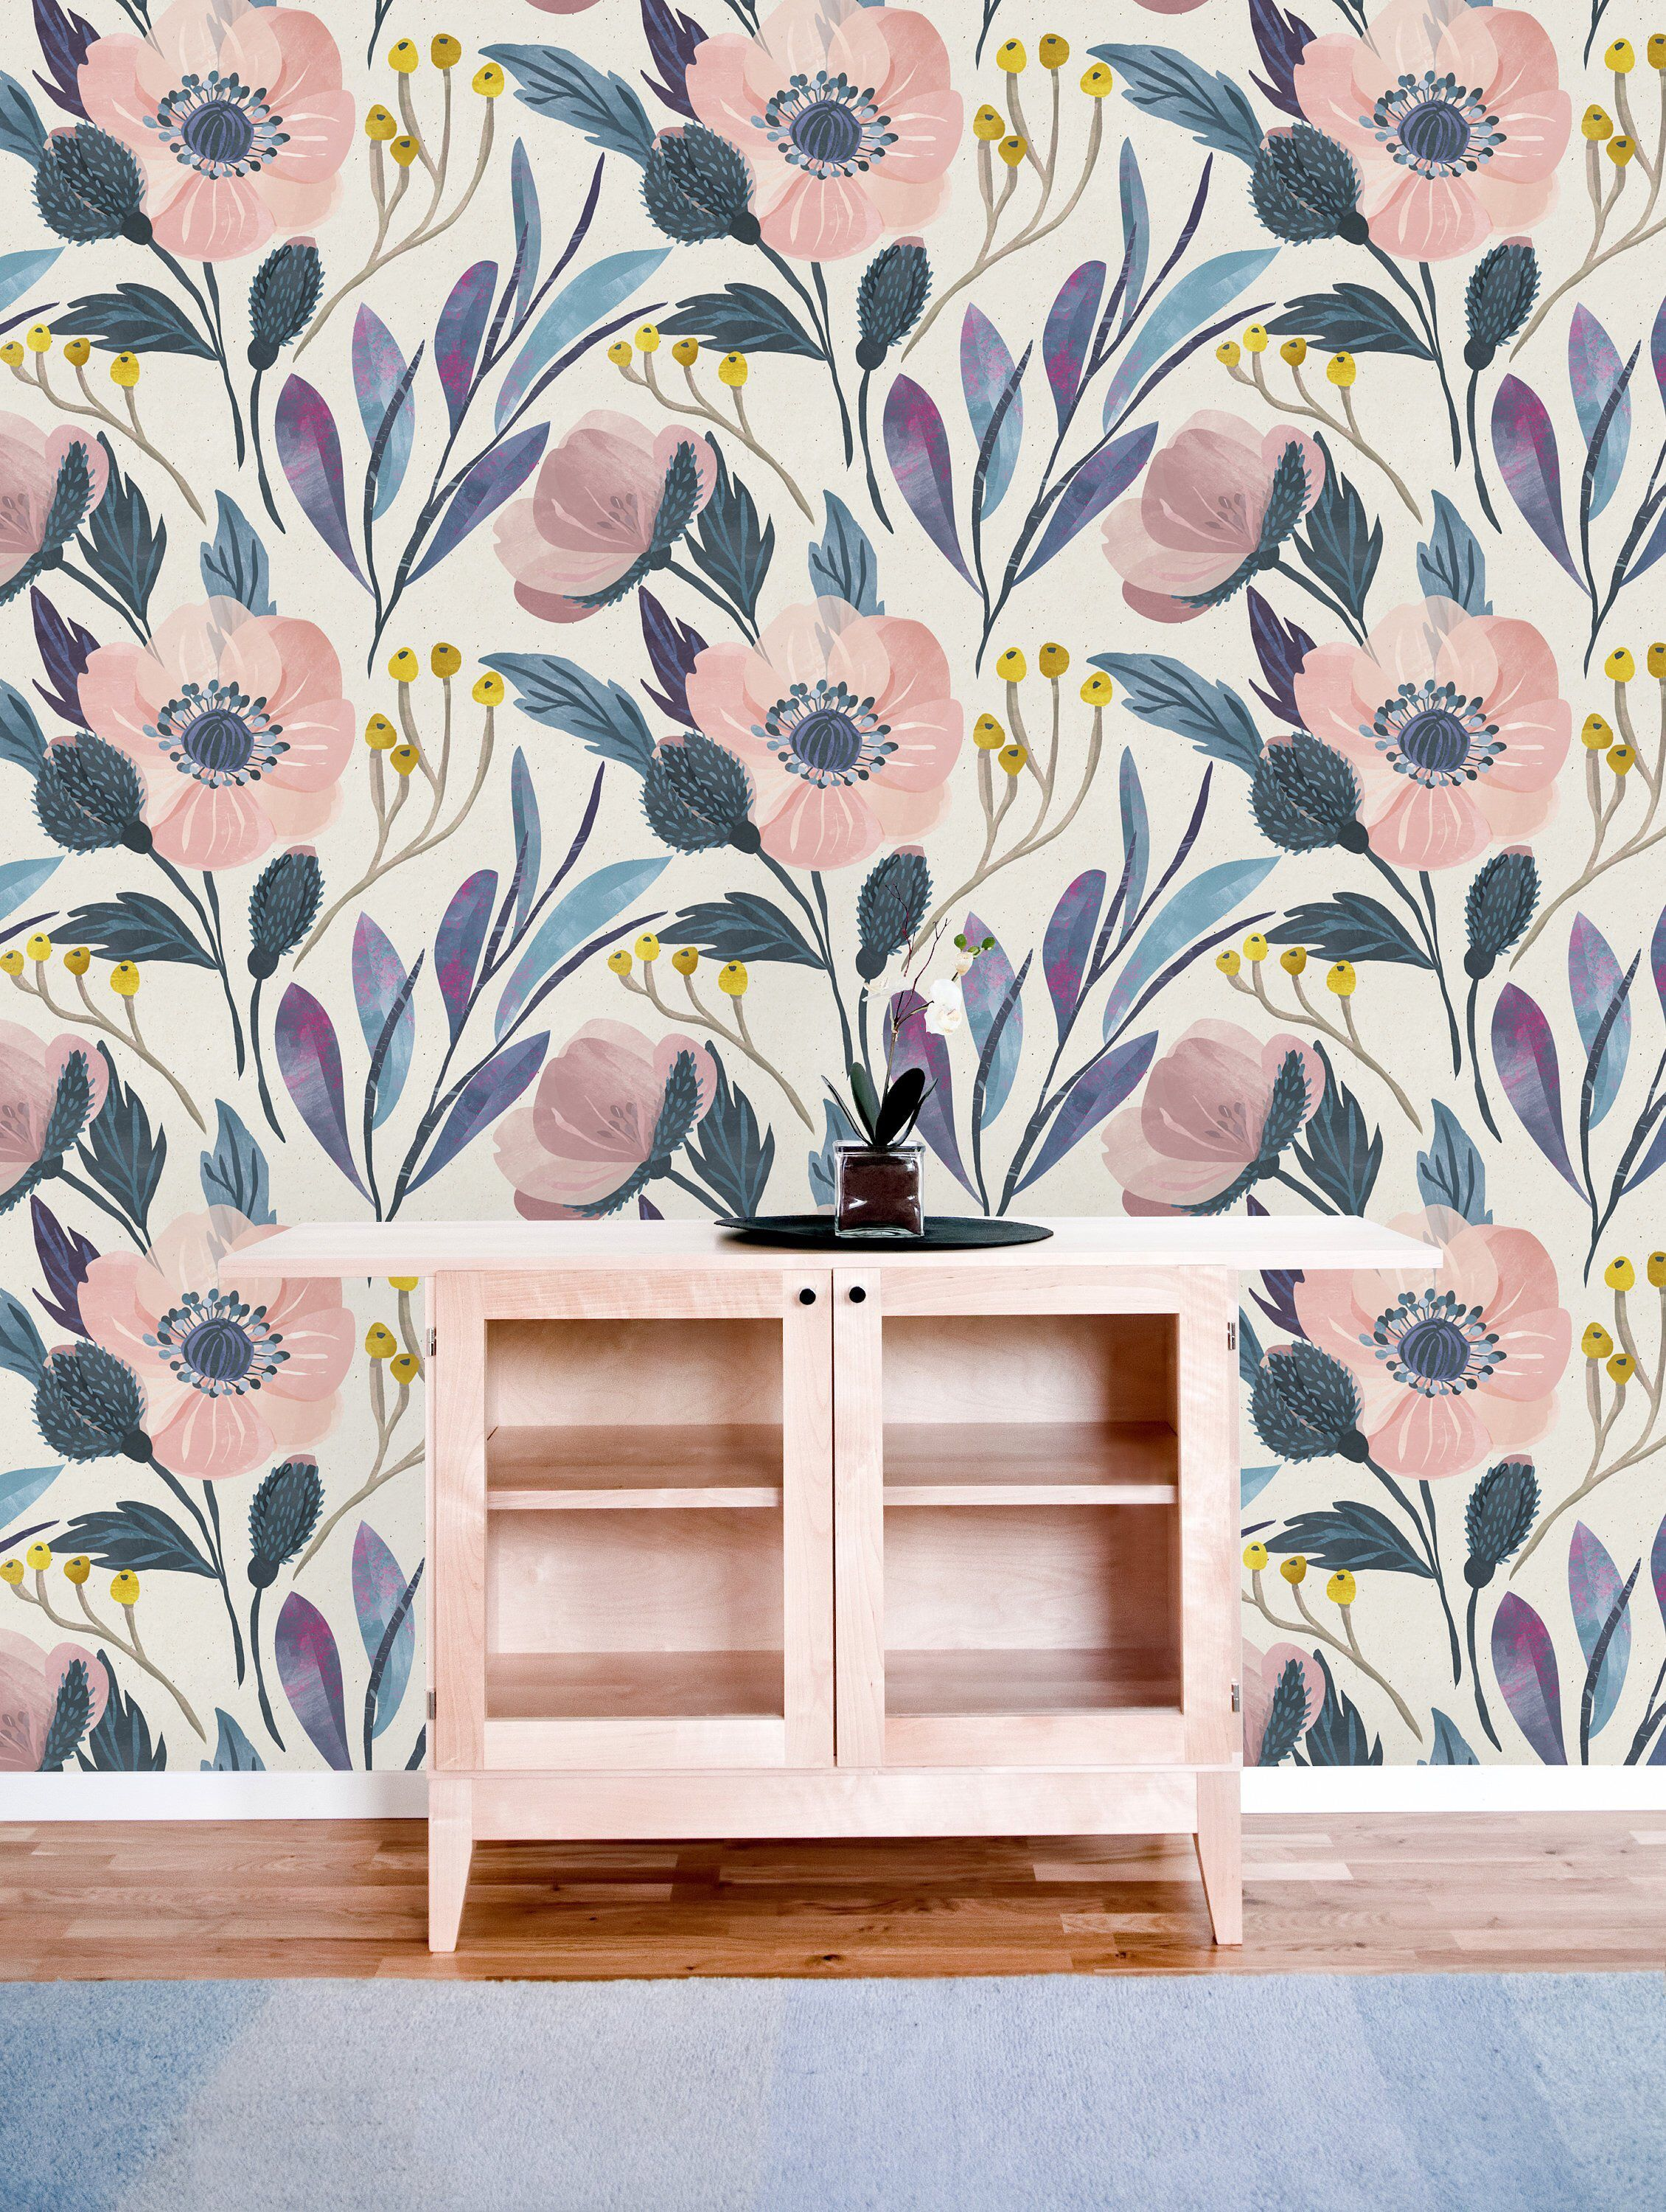 Vintage Pink Flowers Removable WallpaperPeel and Stick